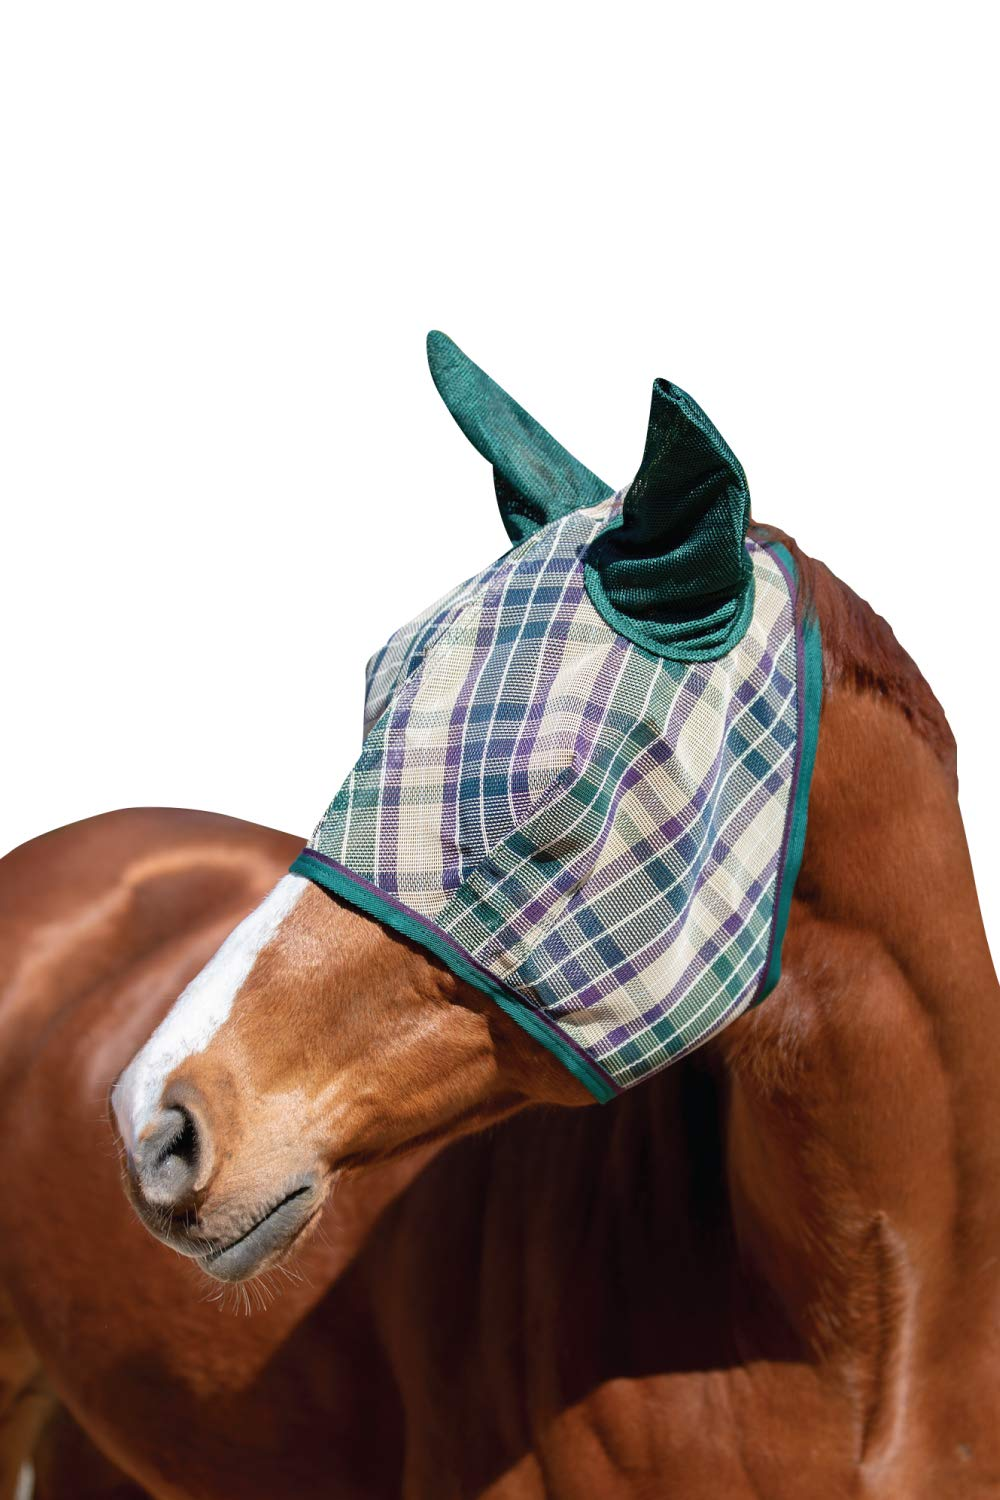 Kensington Signature Fly Mask with Removable Nose and Soft Mesh Ears - Protects Horses Face, Nose and Ears from Biting Insects and UV Rays While Allowing Full Visibility (L, Deluxe Hunter)